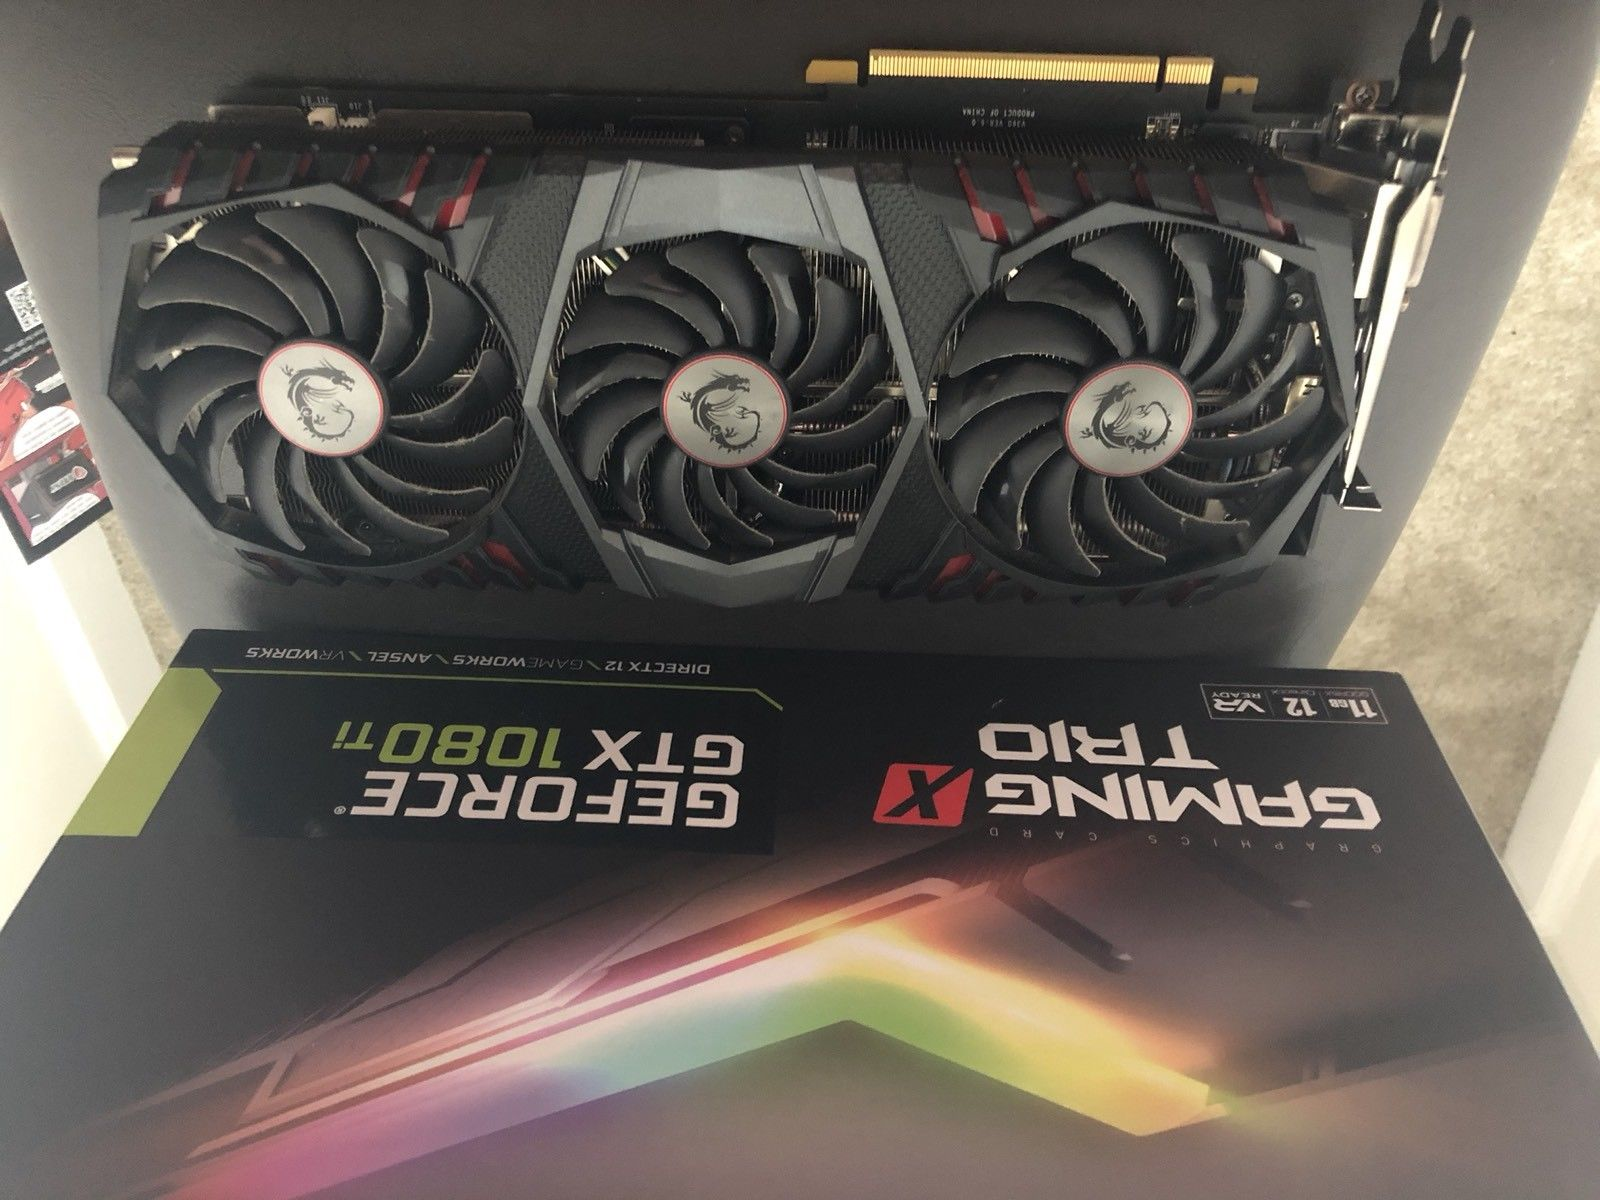 For Sale Graphic Cards Asic S9x3r4 L3 D3 Gtx 1080rx580 Asus Geforce 1080 Ti 11gb Ddr5x Rog Poseidon Strix Oc Edition 1080ti